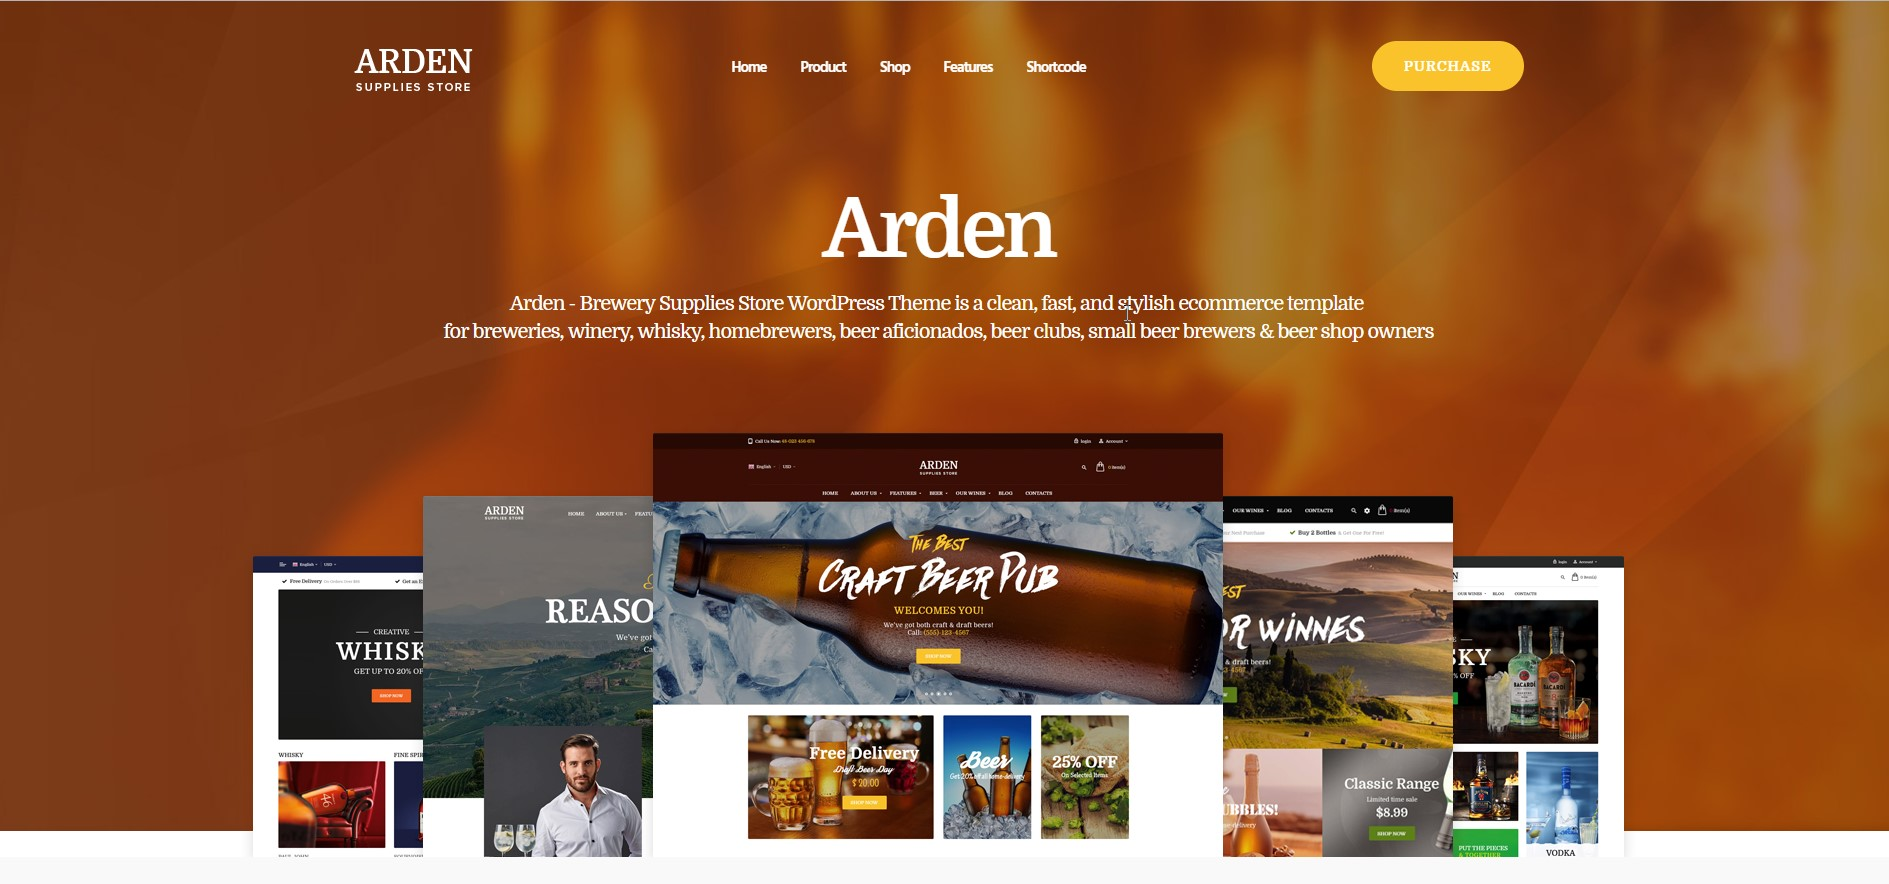 Arden Modern Brewery & Pub WordPress Theme